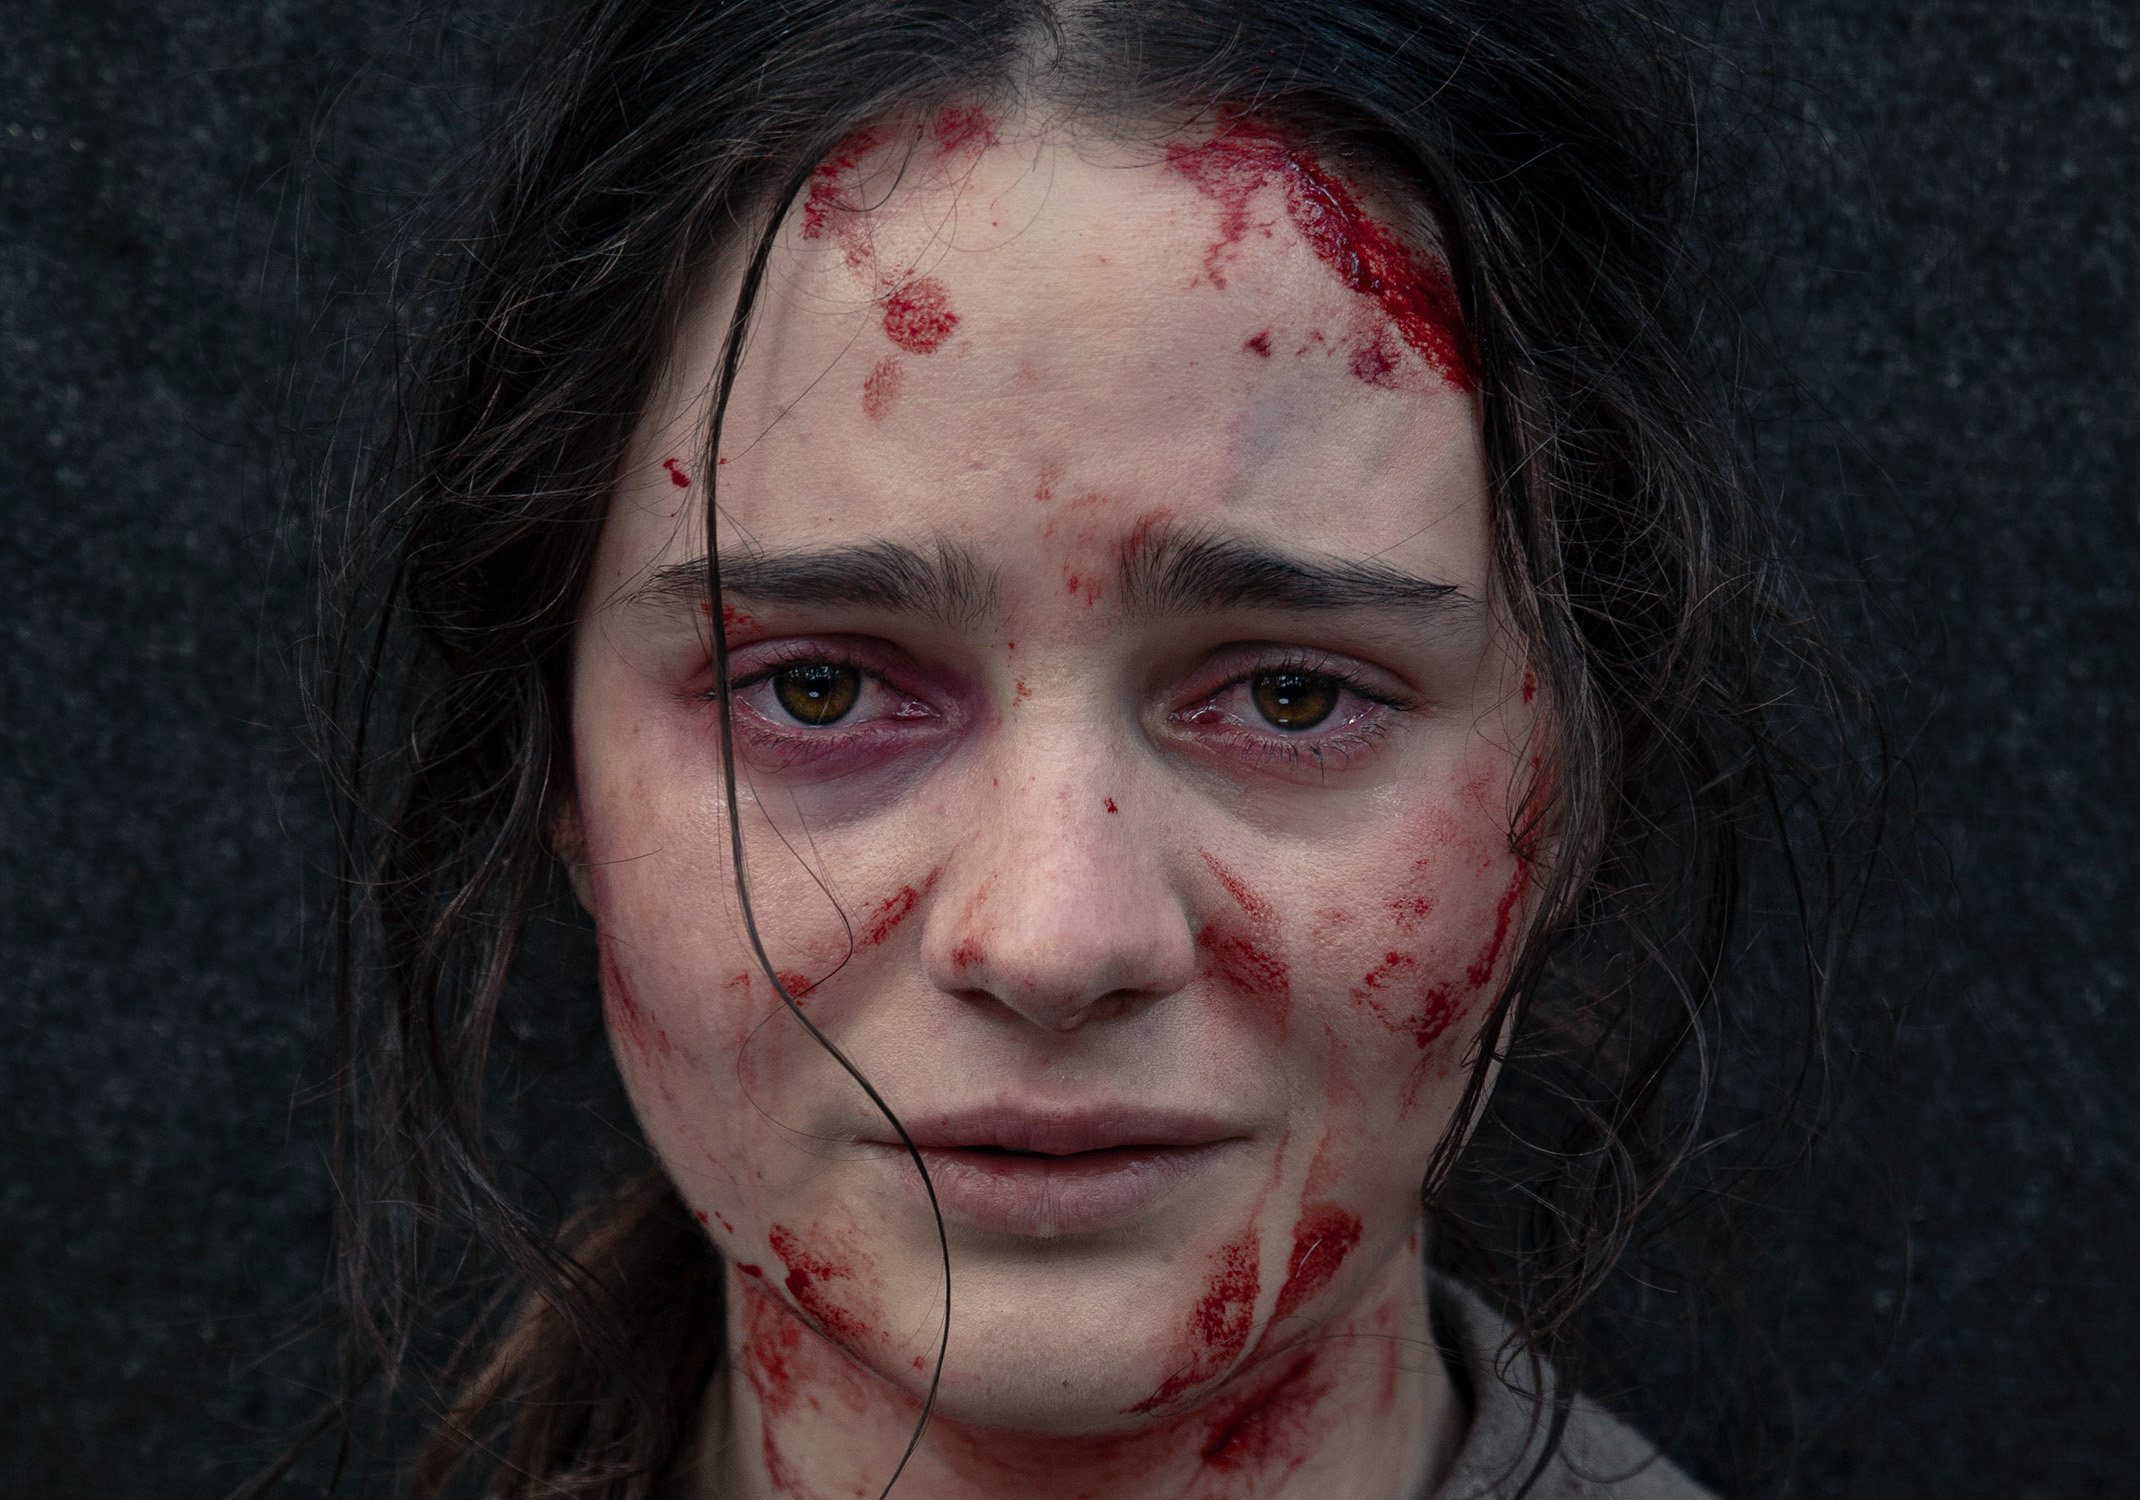 """Aisling Franciosi stars in """"The Nightingale,"""" writer-director Jennifer Kent's follow-up to her horror debut, """"The Babadook."""" (Photo courtesy of IFC Films.)"""